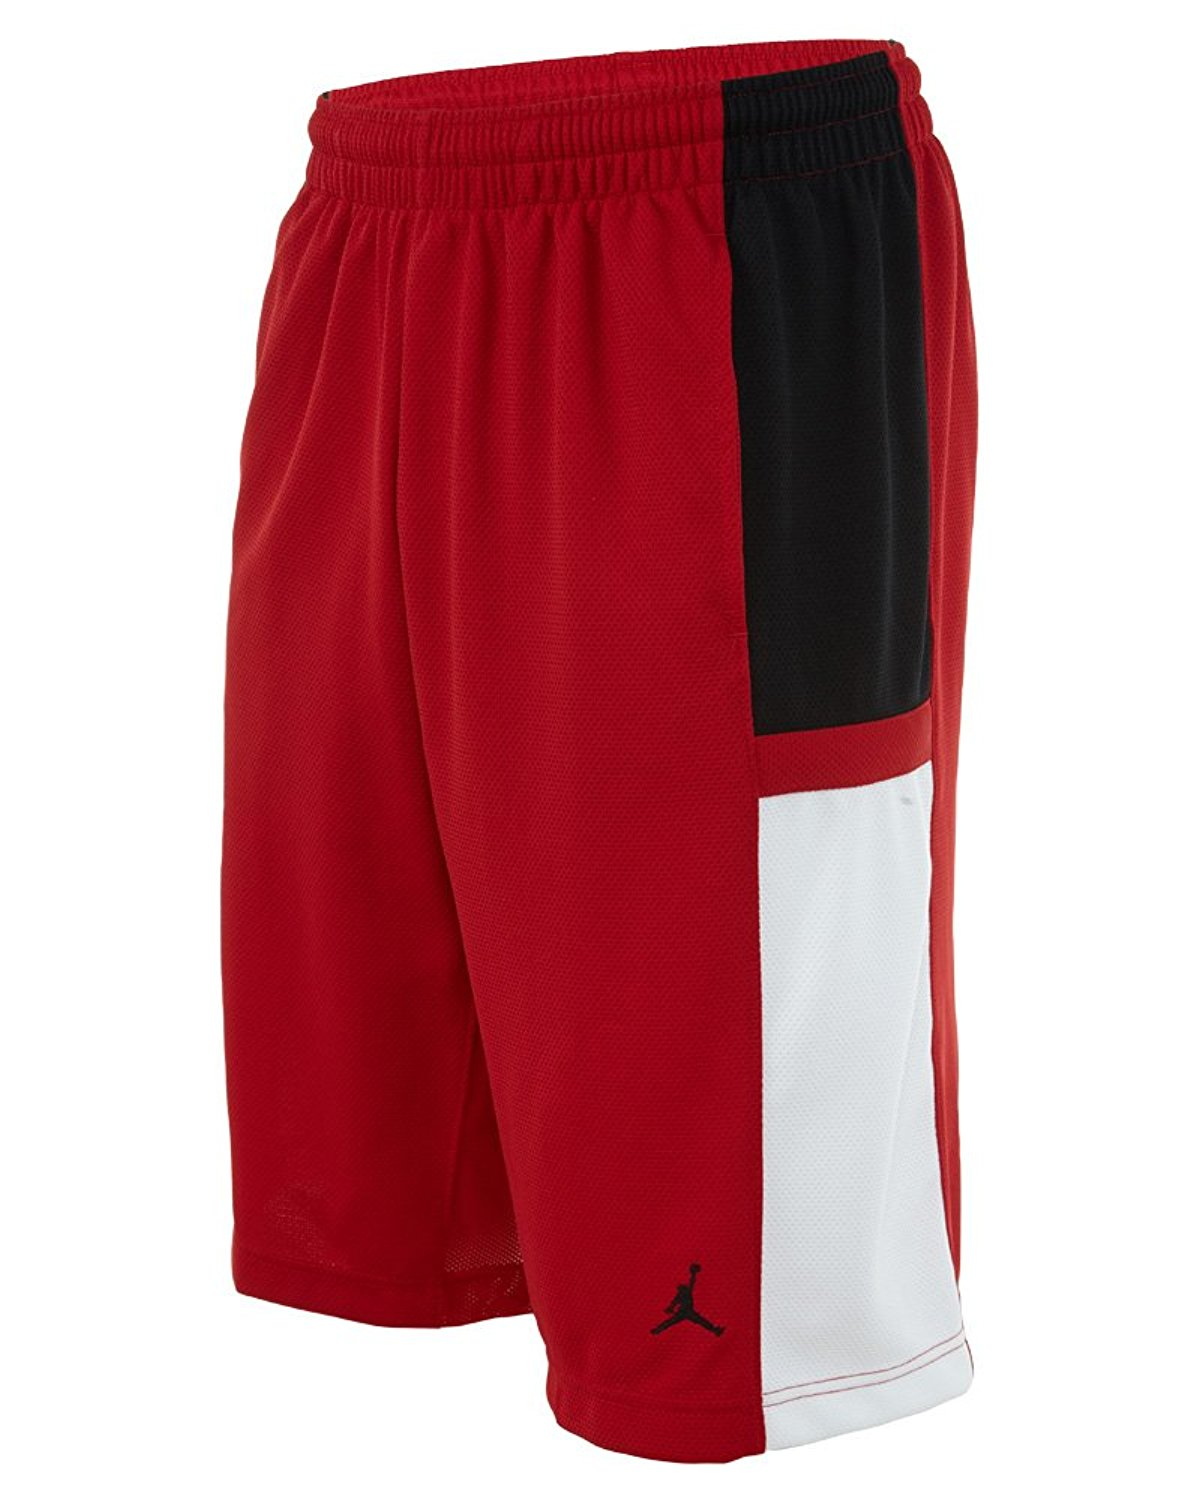 e9d417e6045 Buy Jordan Mens Nike Durasheen Jumpman Basketball Shorts-Black/Red ...